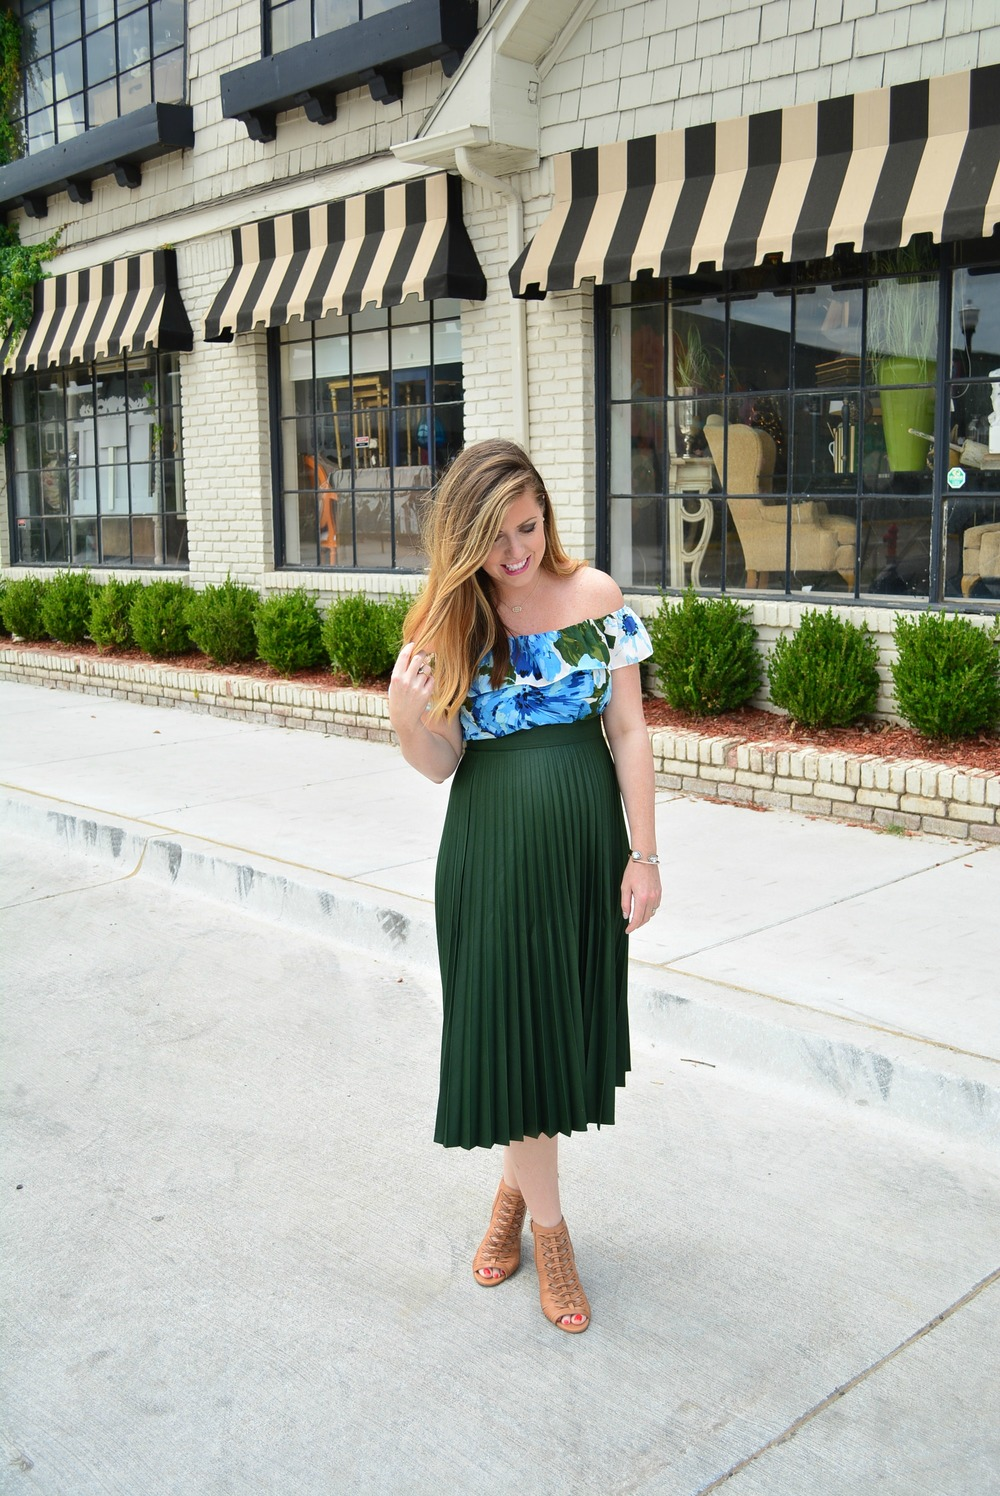 Floral off the shoulder top with accordion skirt for a sassy maternity look